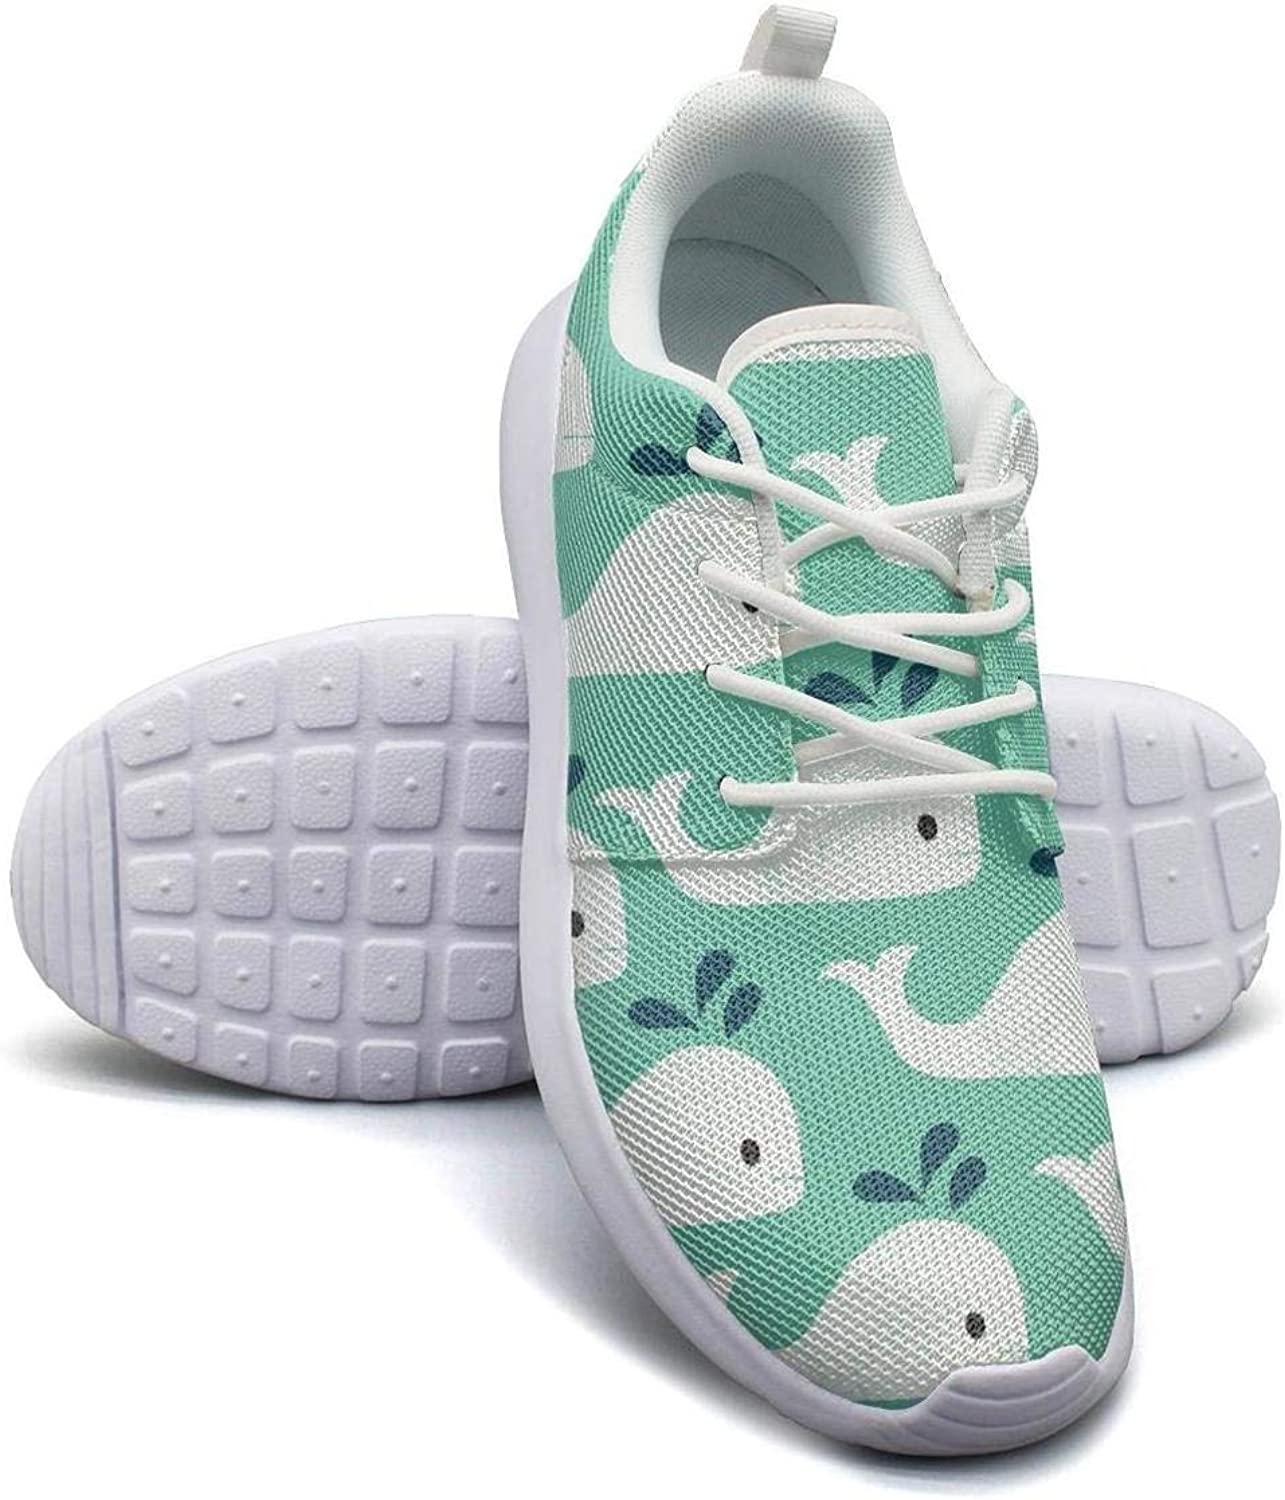 Gjsonmv Vintage Whale Pattern mesh Lightweight shoes for Women Fashion Sports Tennis Sneakers shoes